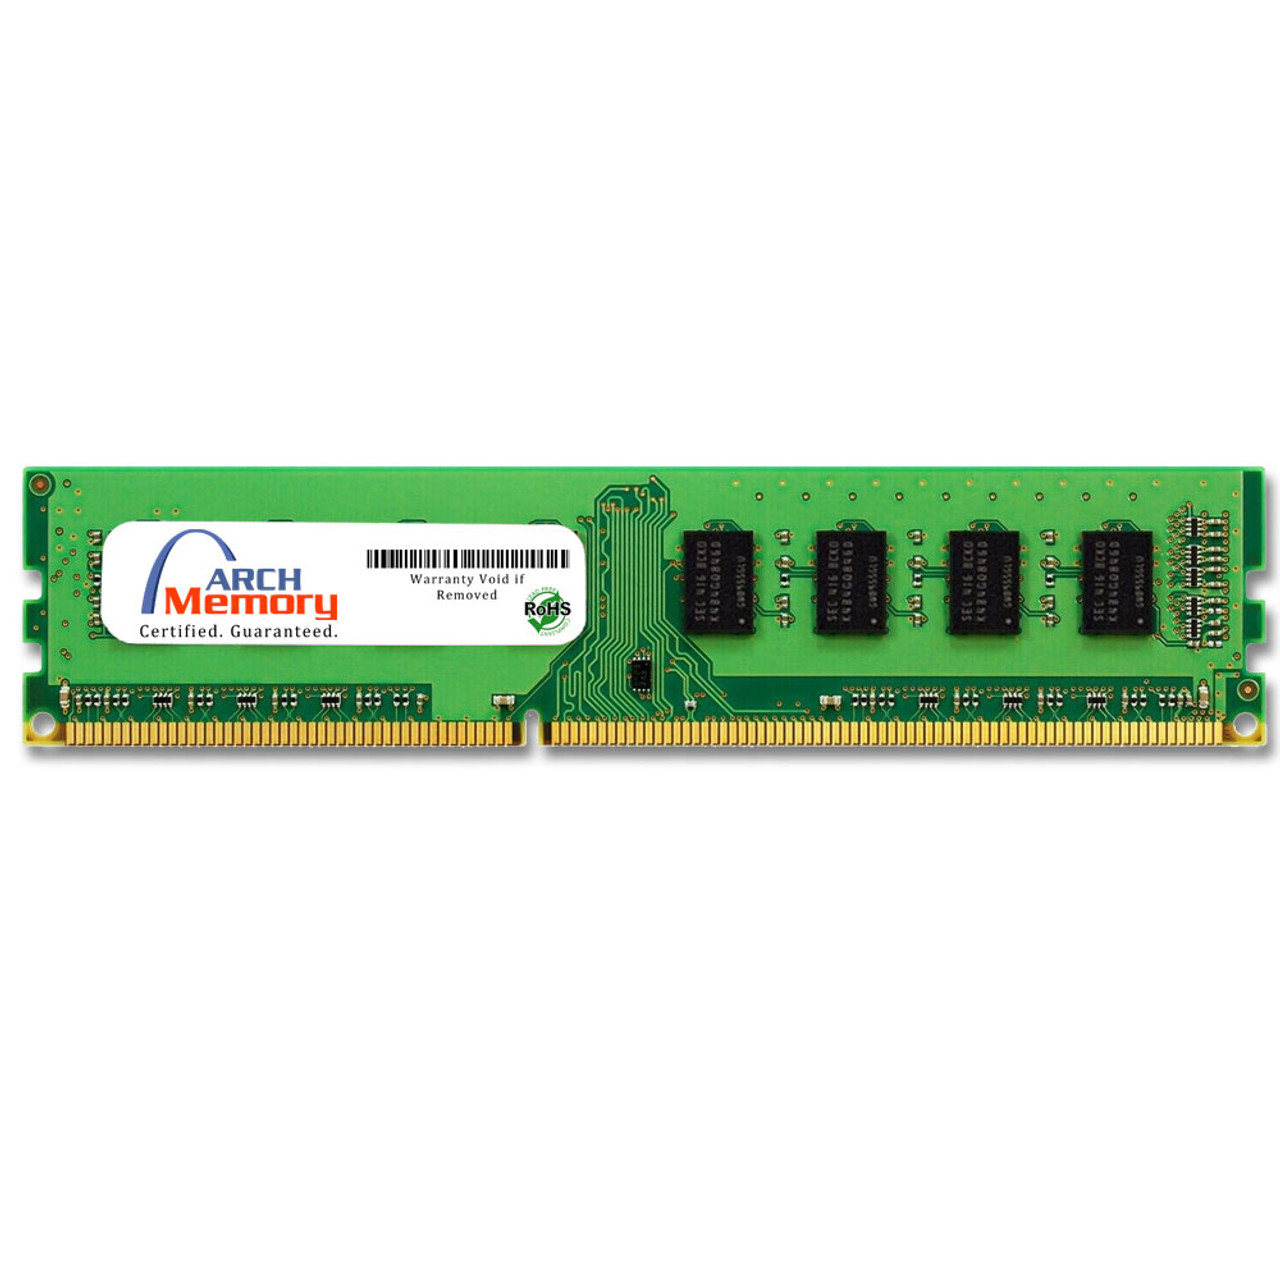 8GB 240-Pin DDR3-1866 PC3-14900 UDIMM RAM